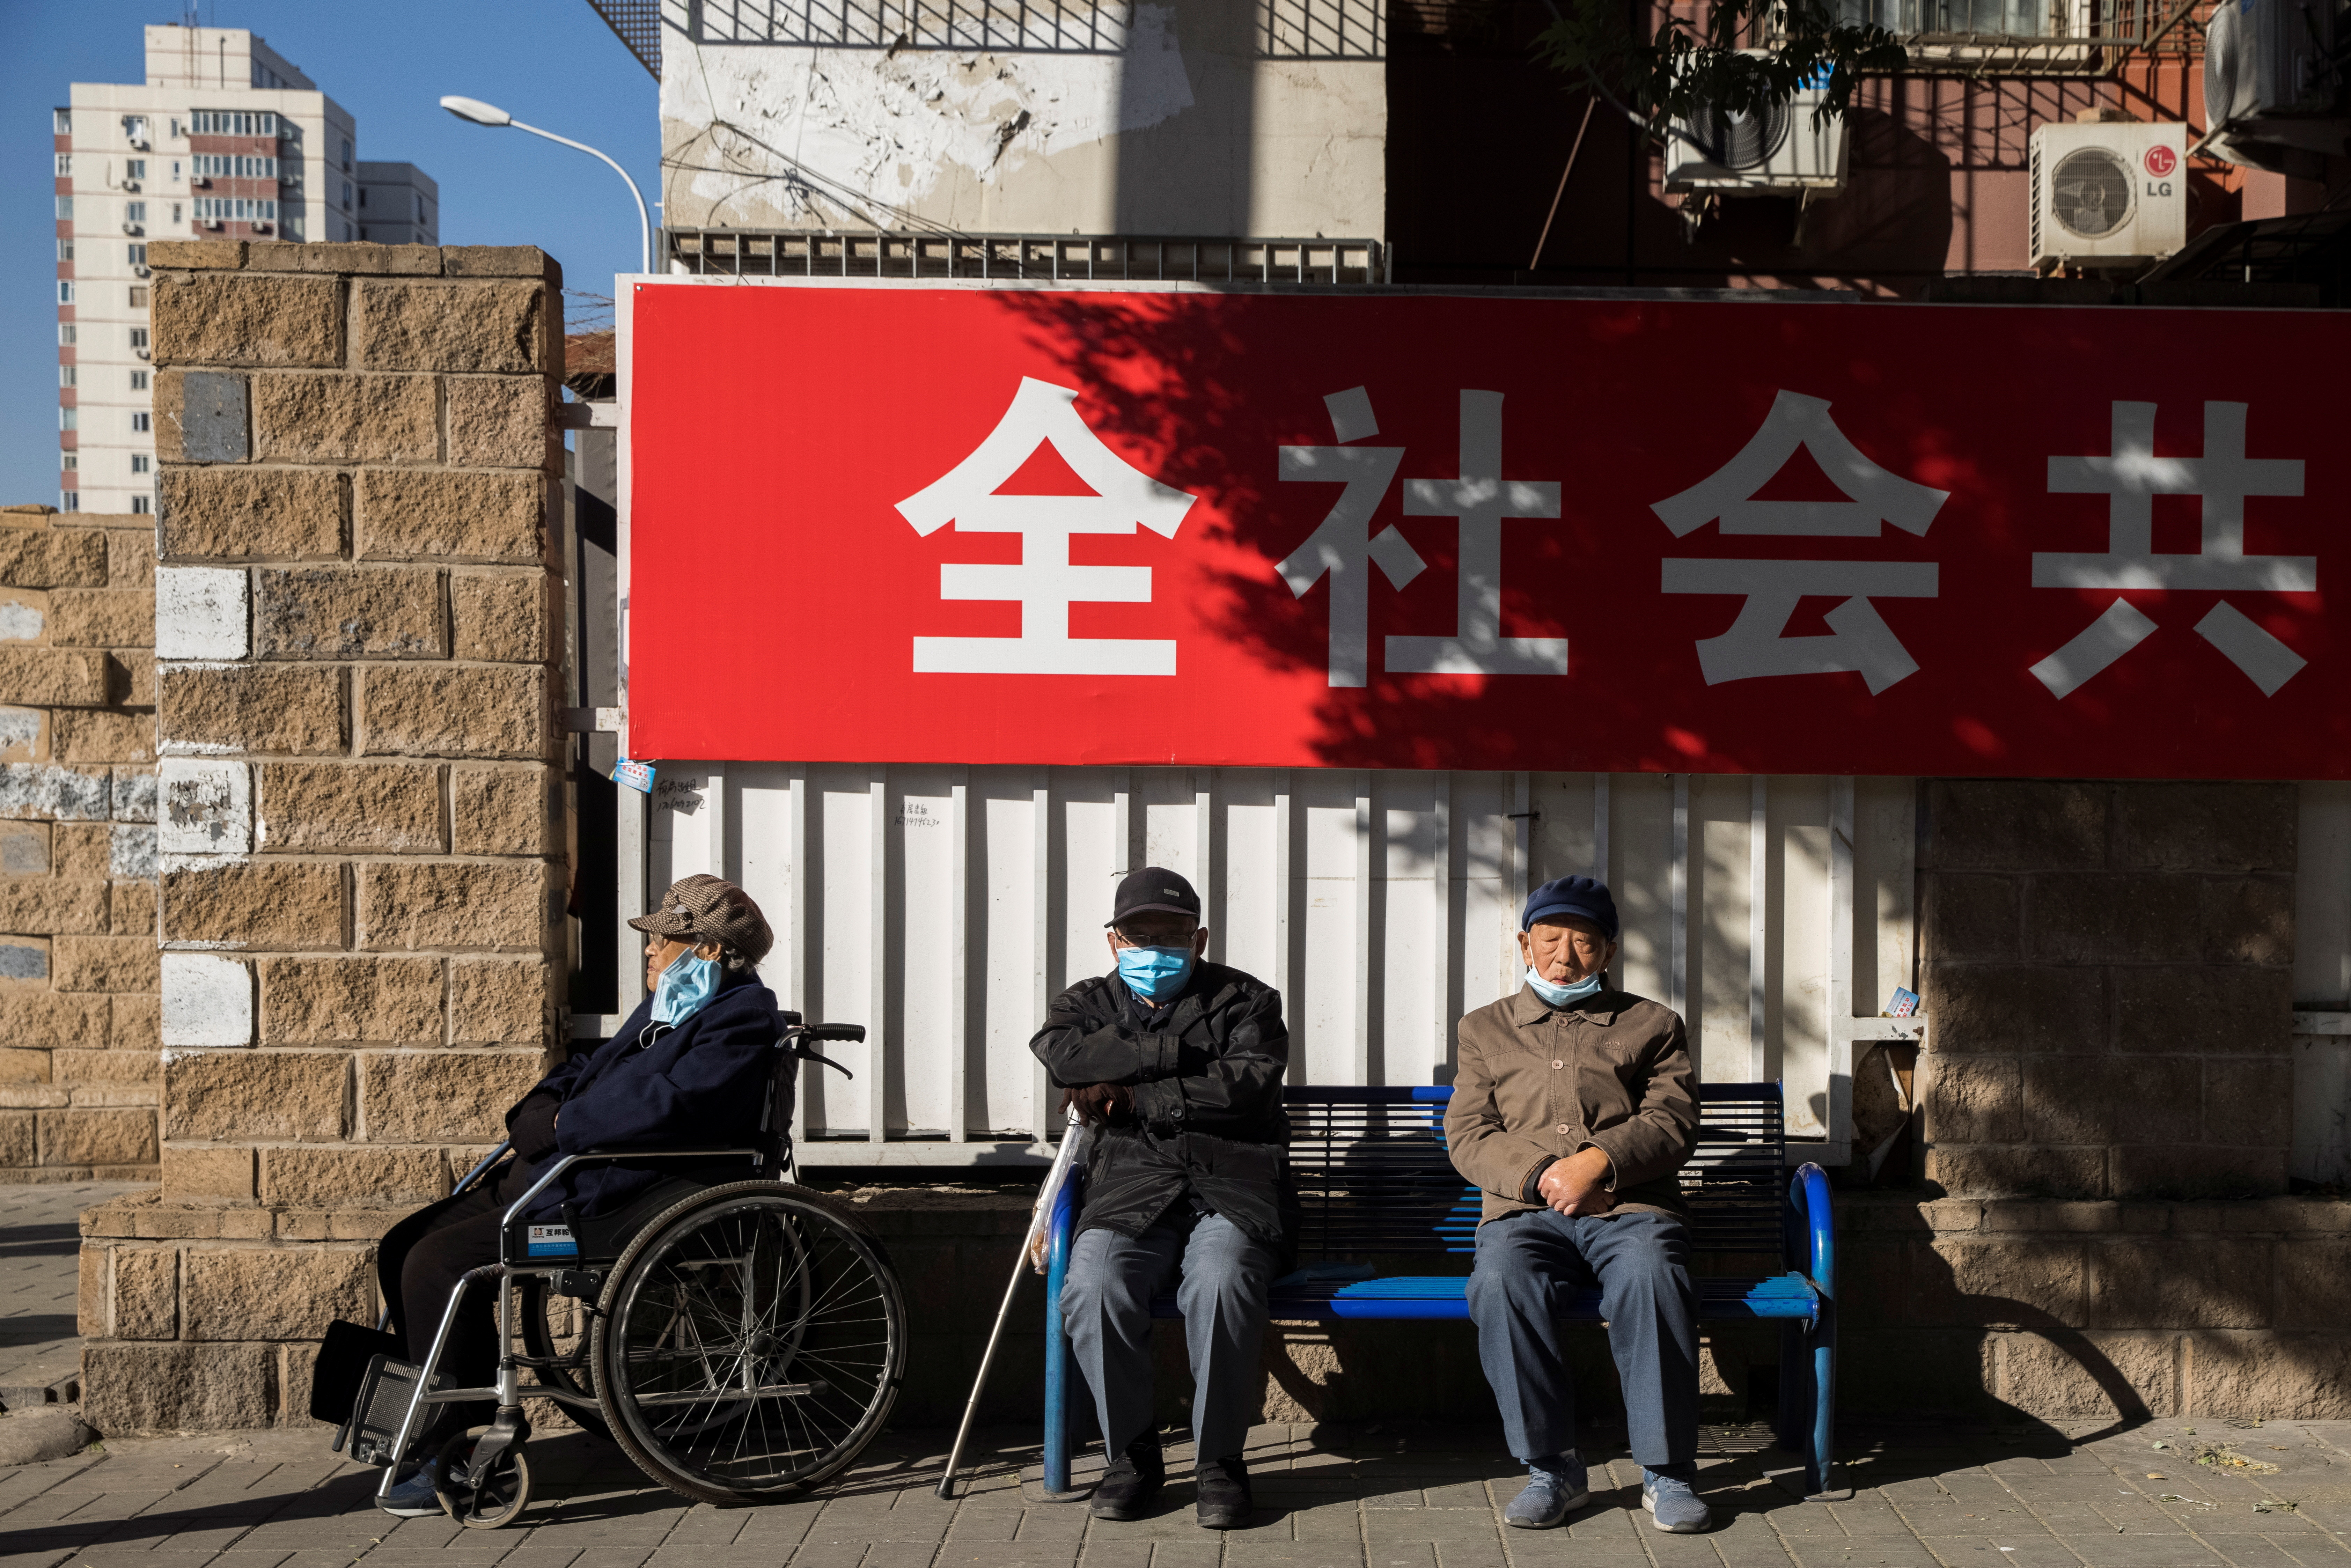 Elderly people sit in a street during morning rush hour following an outbreak of the coronavirus disease (COVID-19) in Beijing, China, November 3, 2020.   REUTERS/Thomas Peter - RC2GVJ9NU878